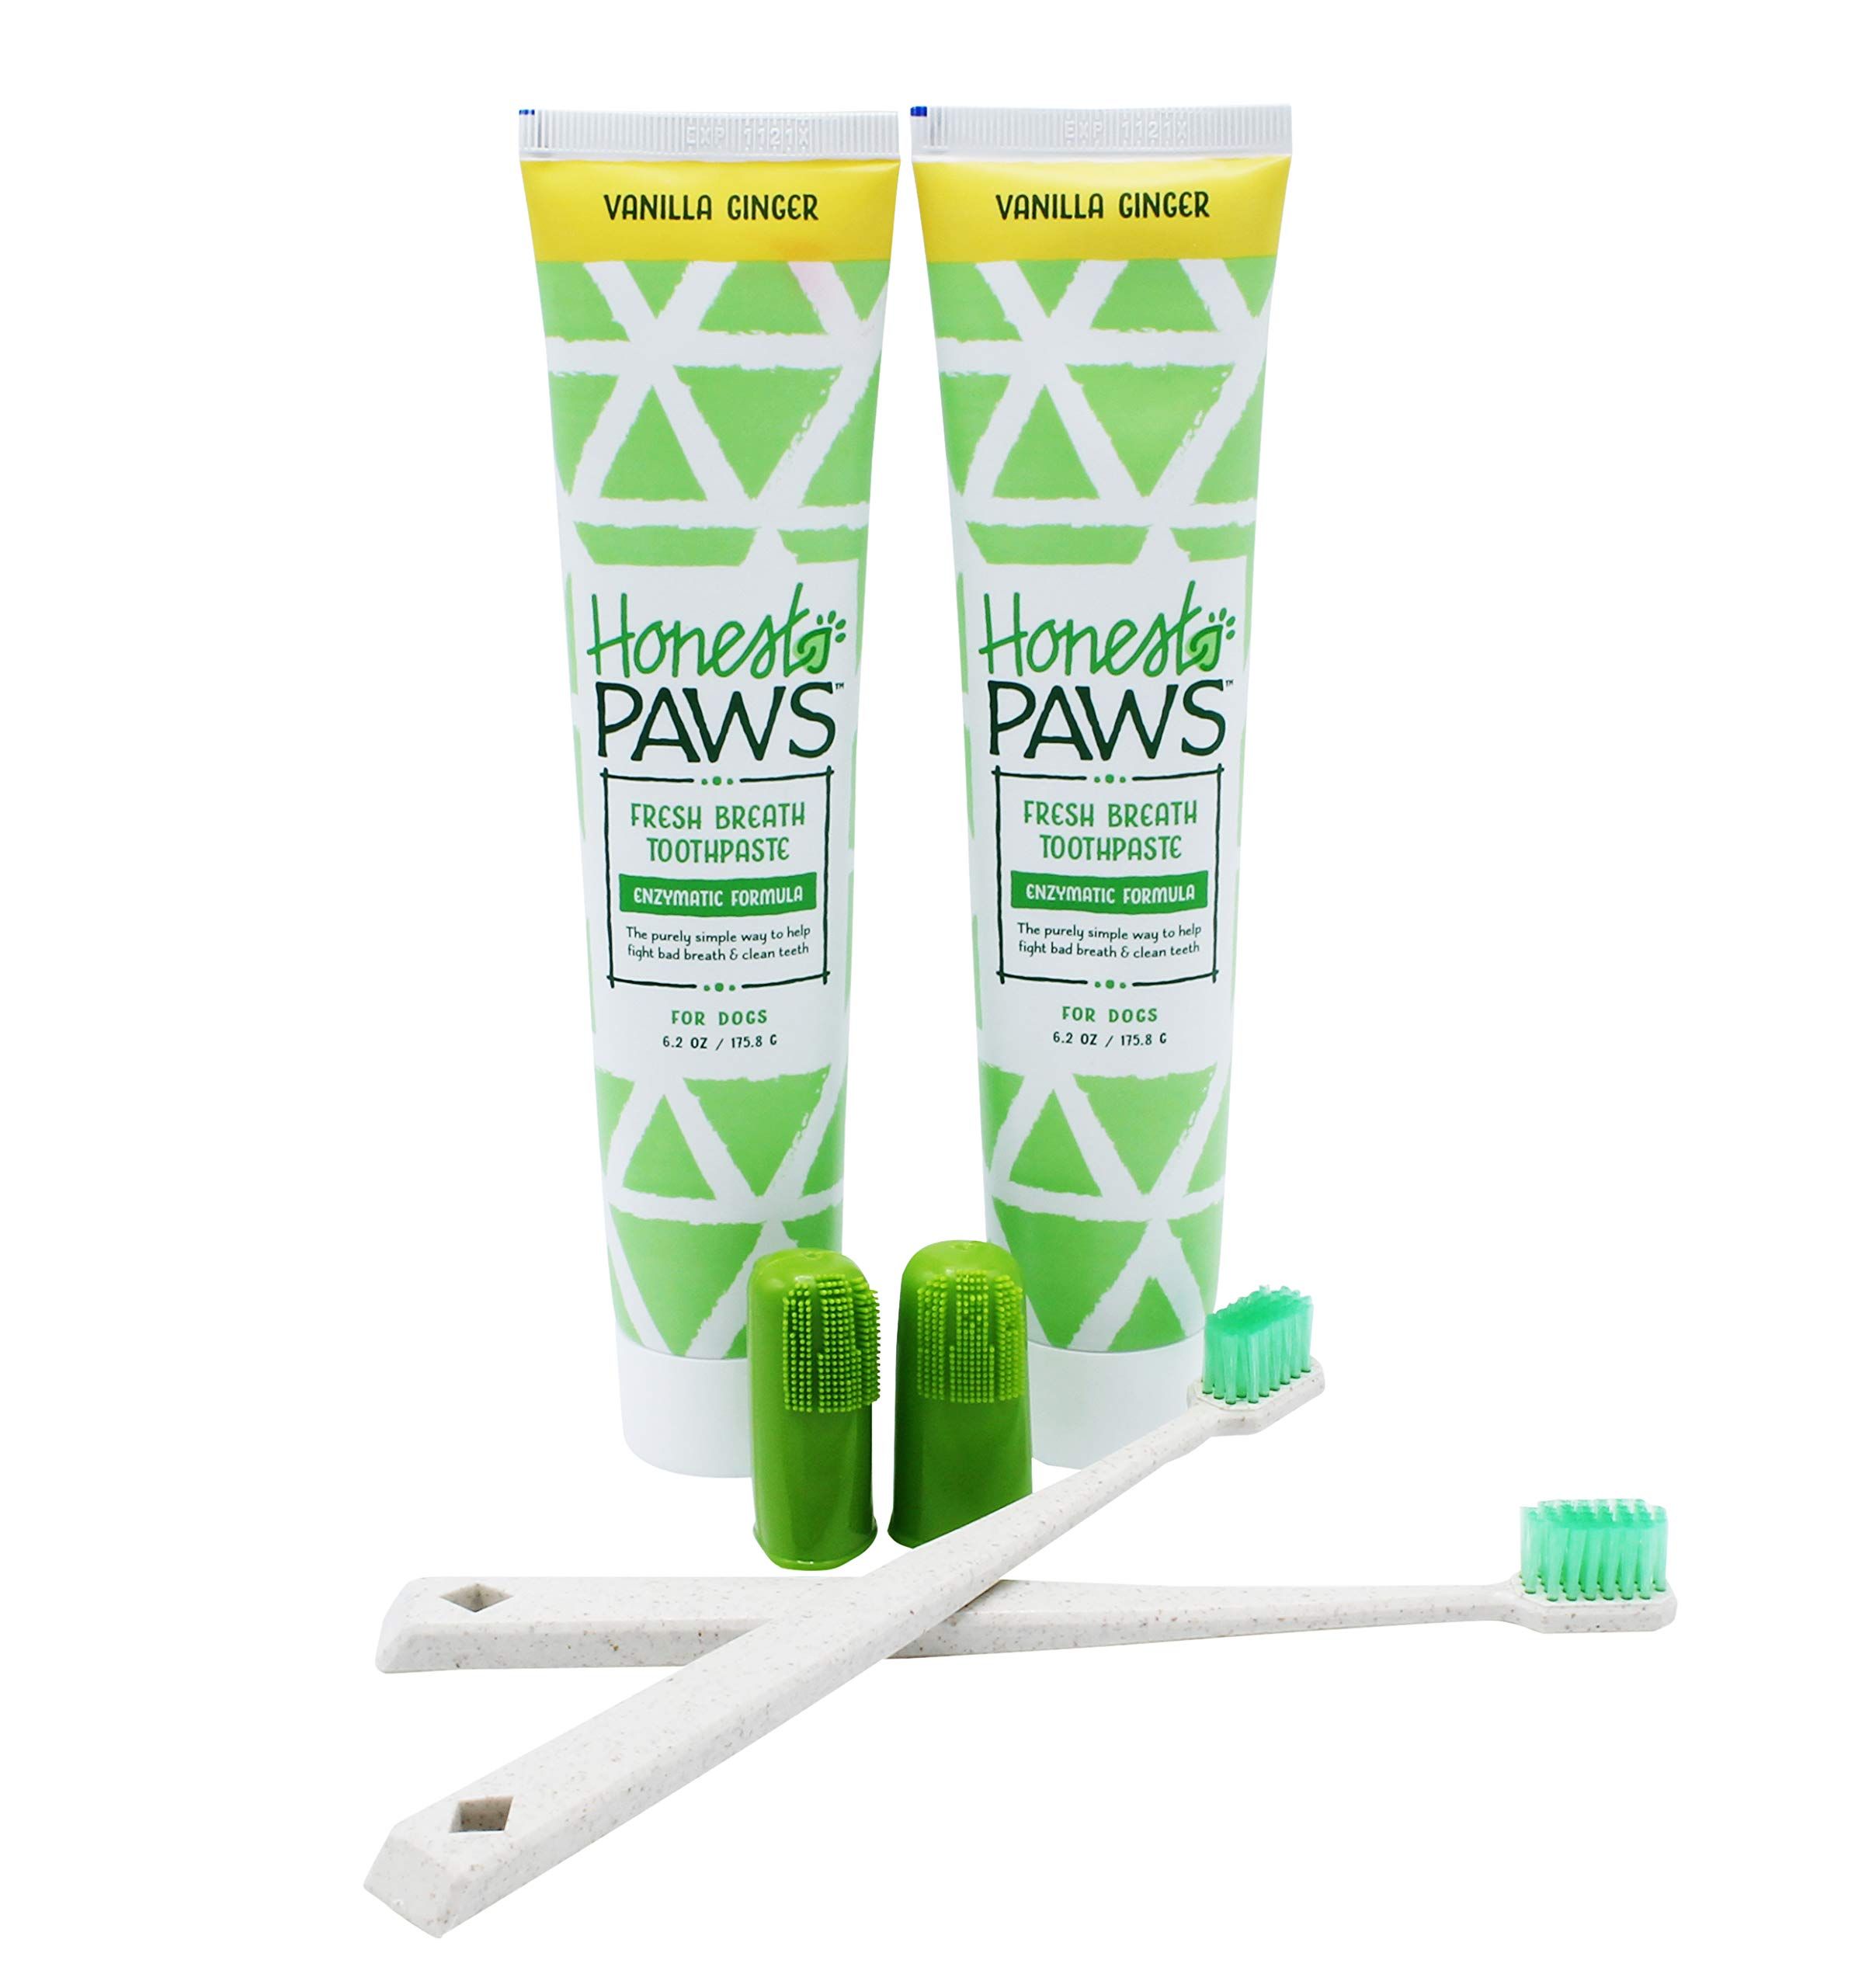 Honest Paws Natural Dog Dental Care Training Kit in Vanilla Ginger Flavor, Pack of 2   Includes Dog Toothpaste, Dog Toothbrush, and Finger Brush by Honest Paws